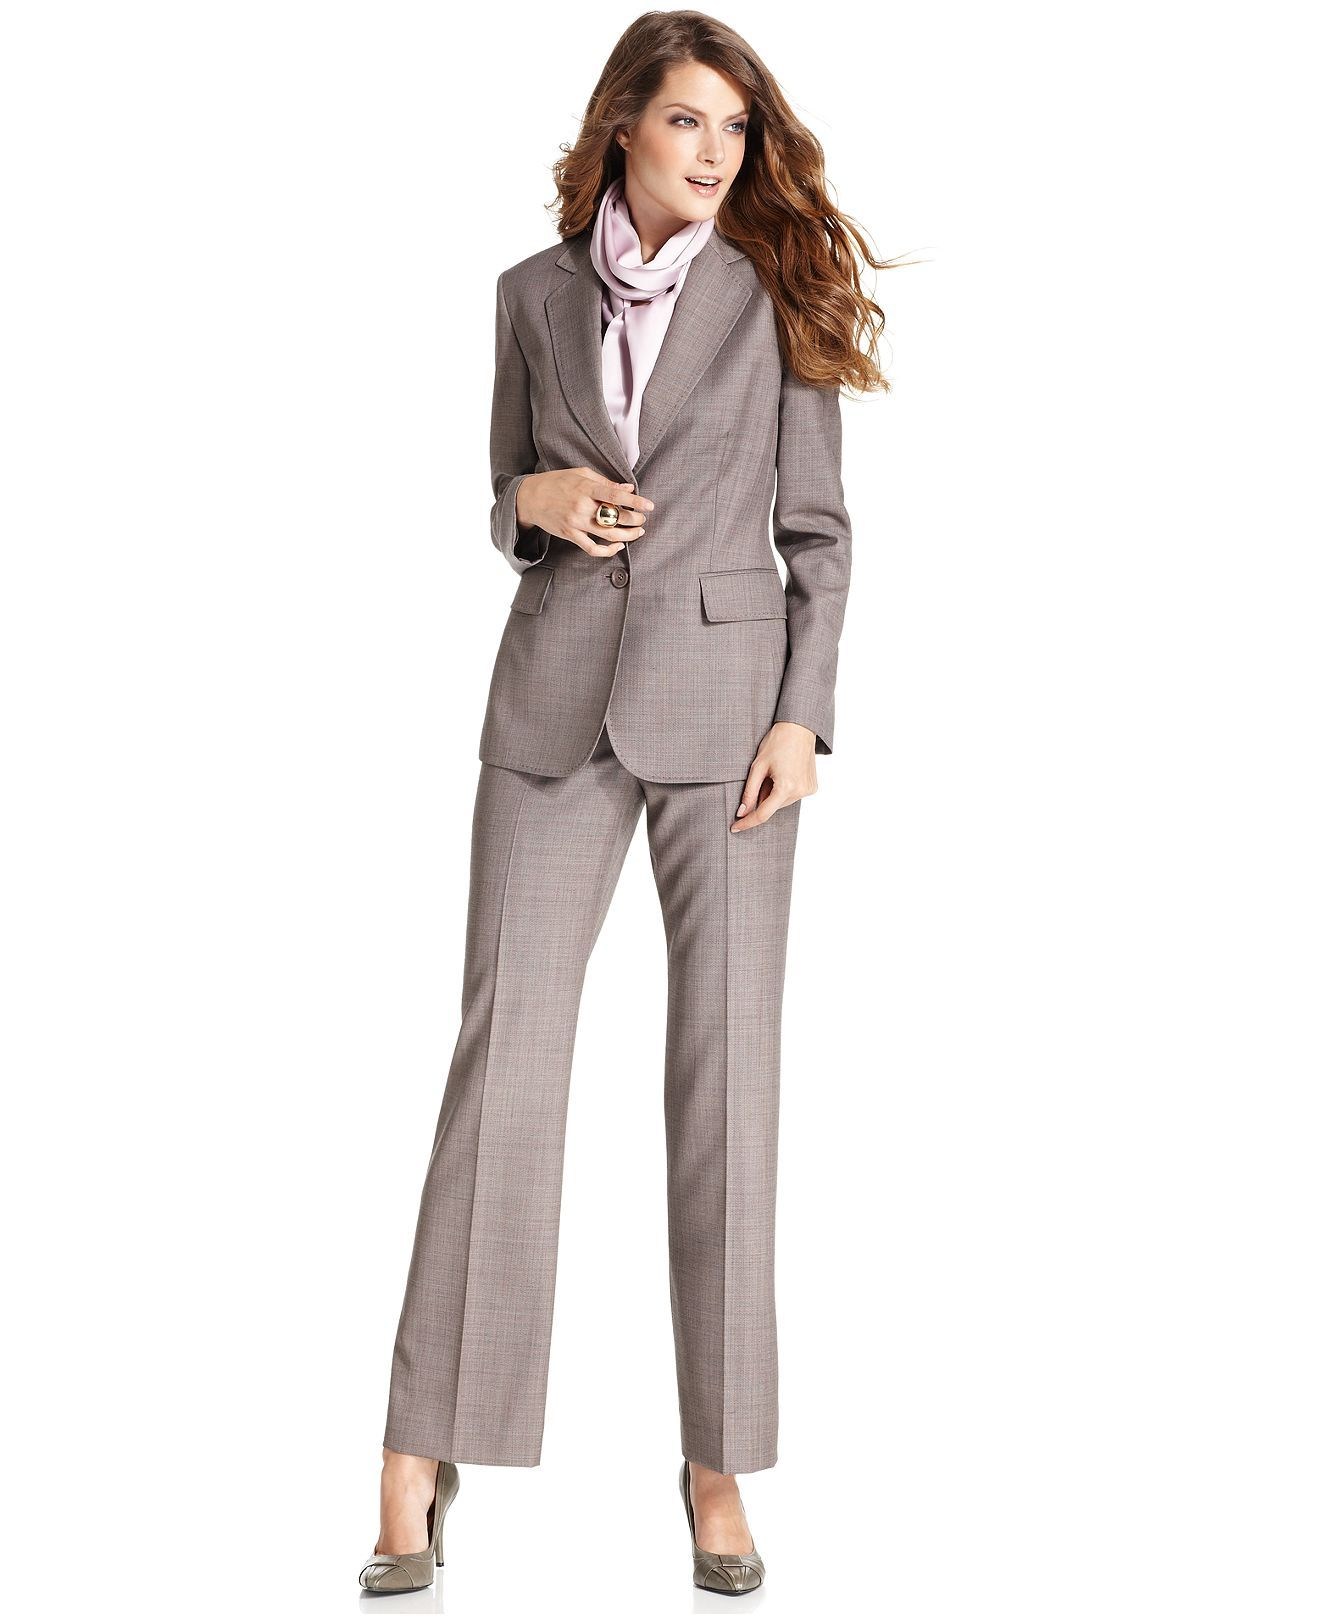 Katharine suit idea at Macy's